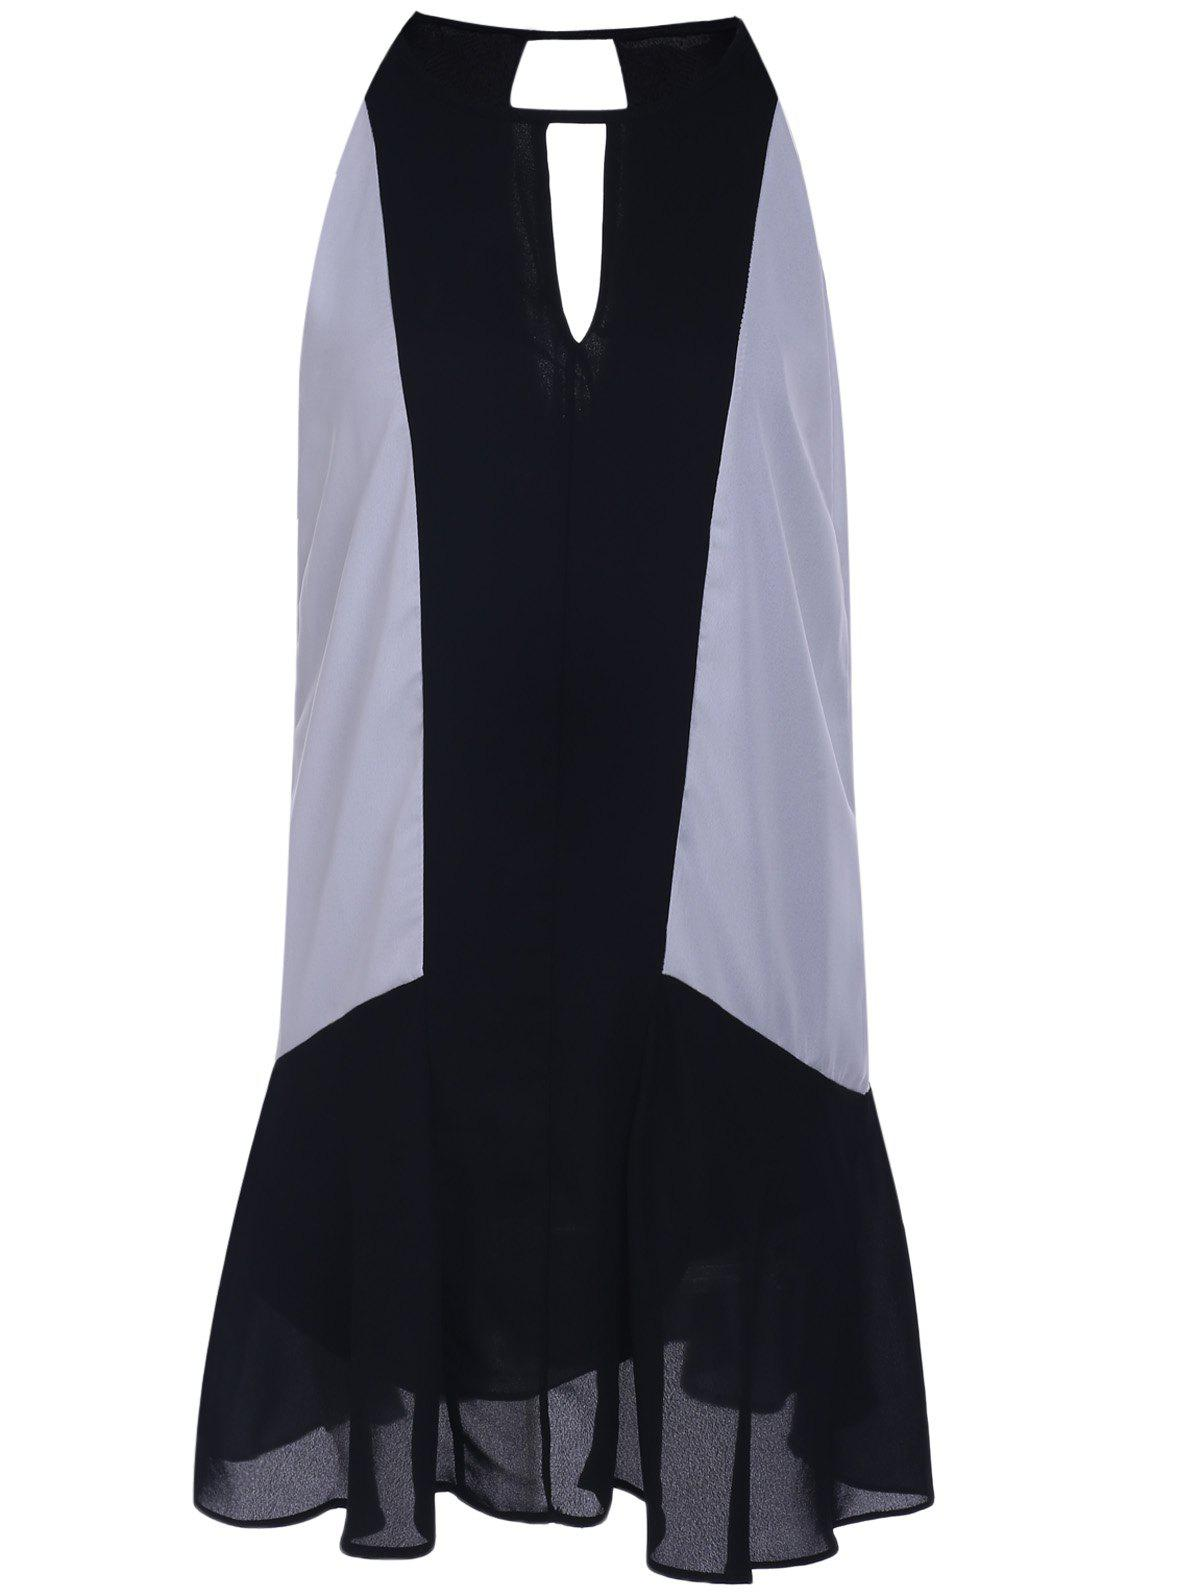 Trendy Sleeveless Black and White Spliced Chiffon Dress For Women - WHITE/BLACK L